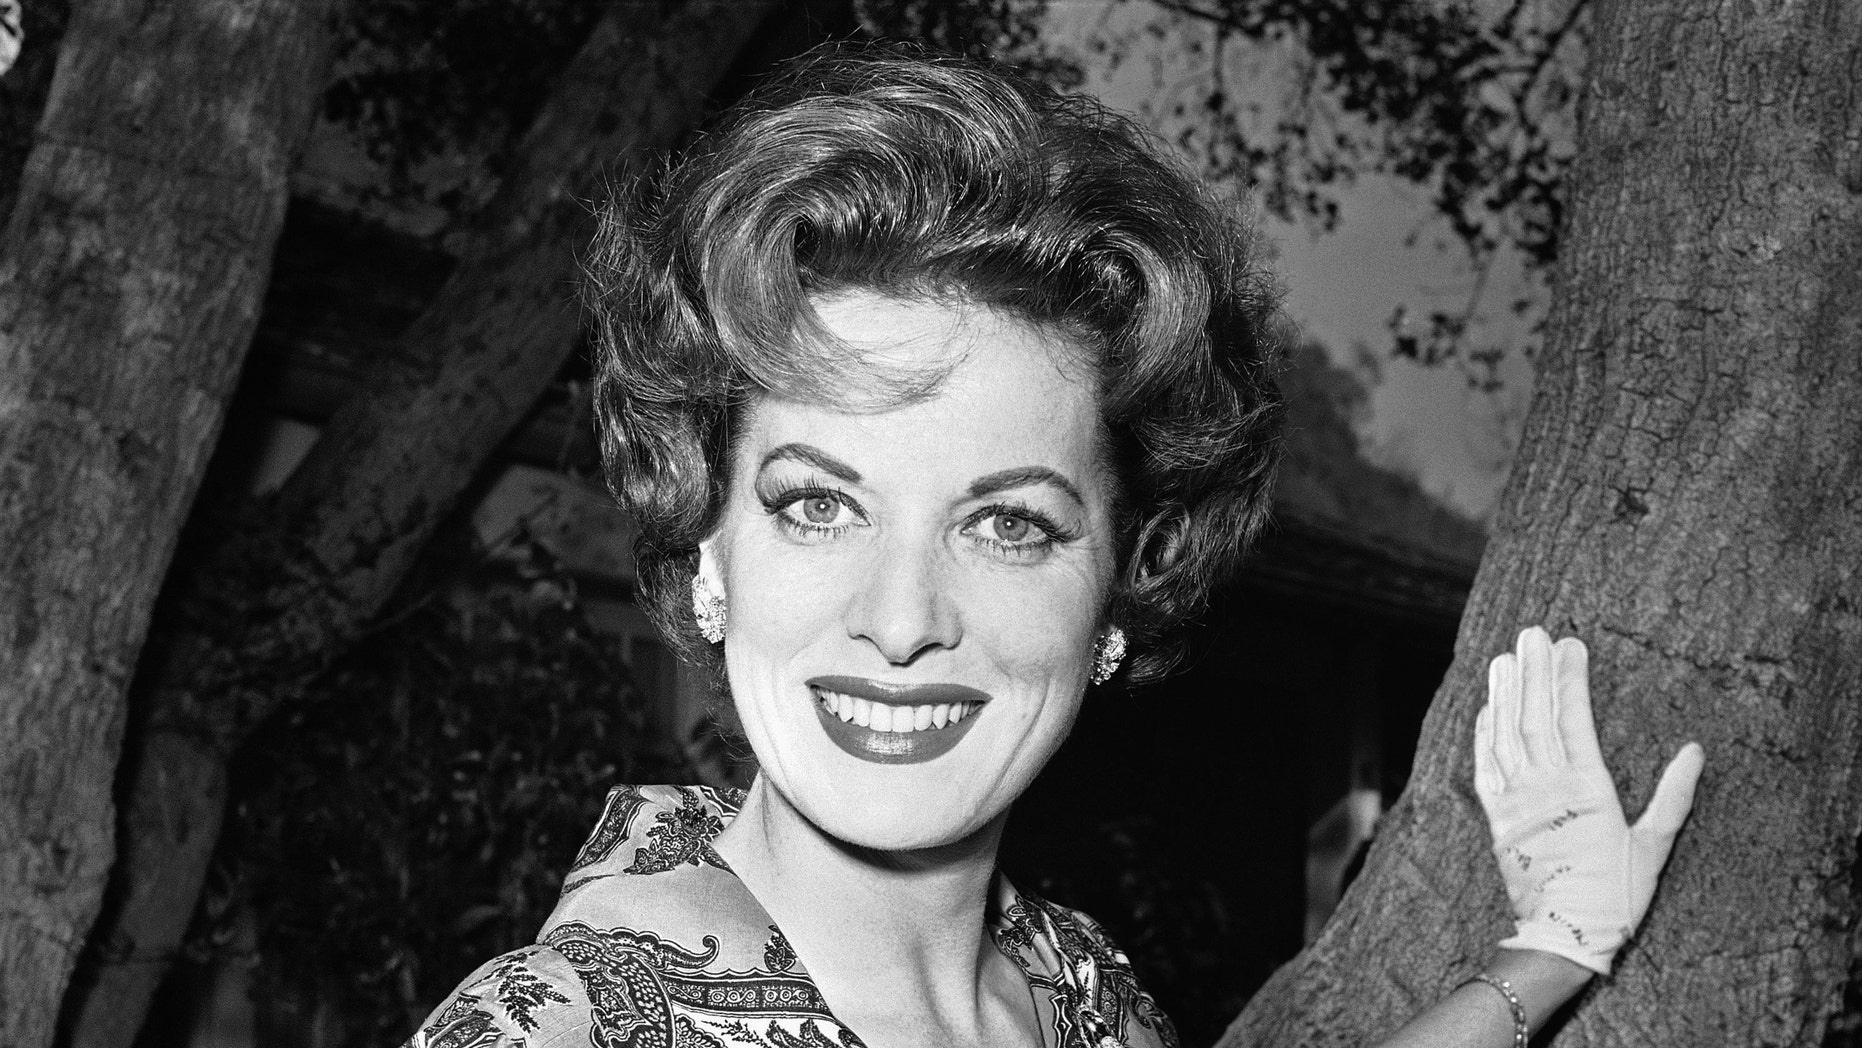 1960. Maureen O'Hara outside her home in Los Angeles.